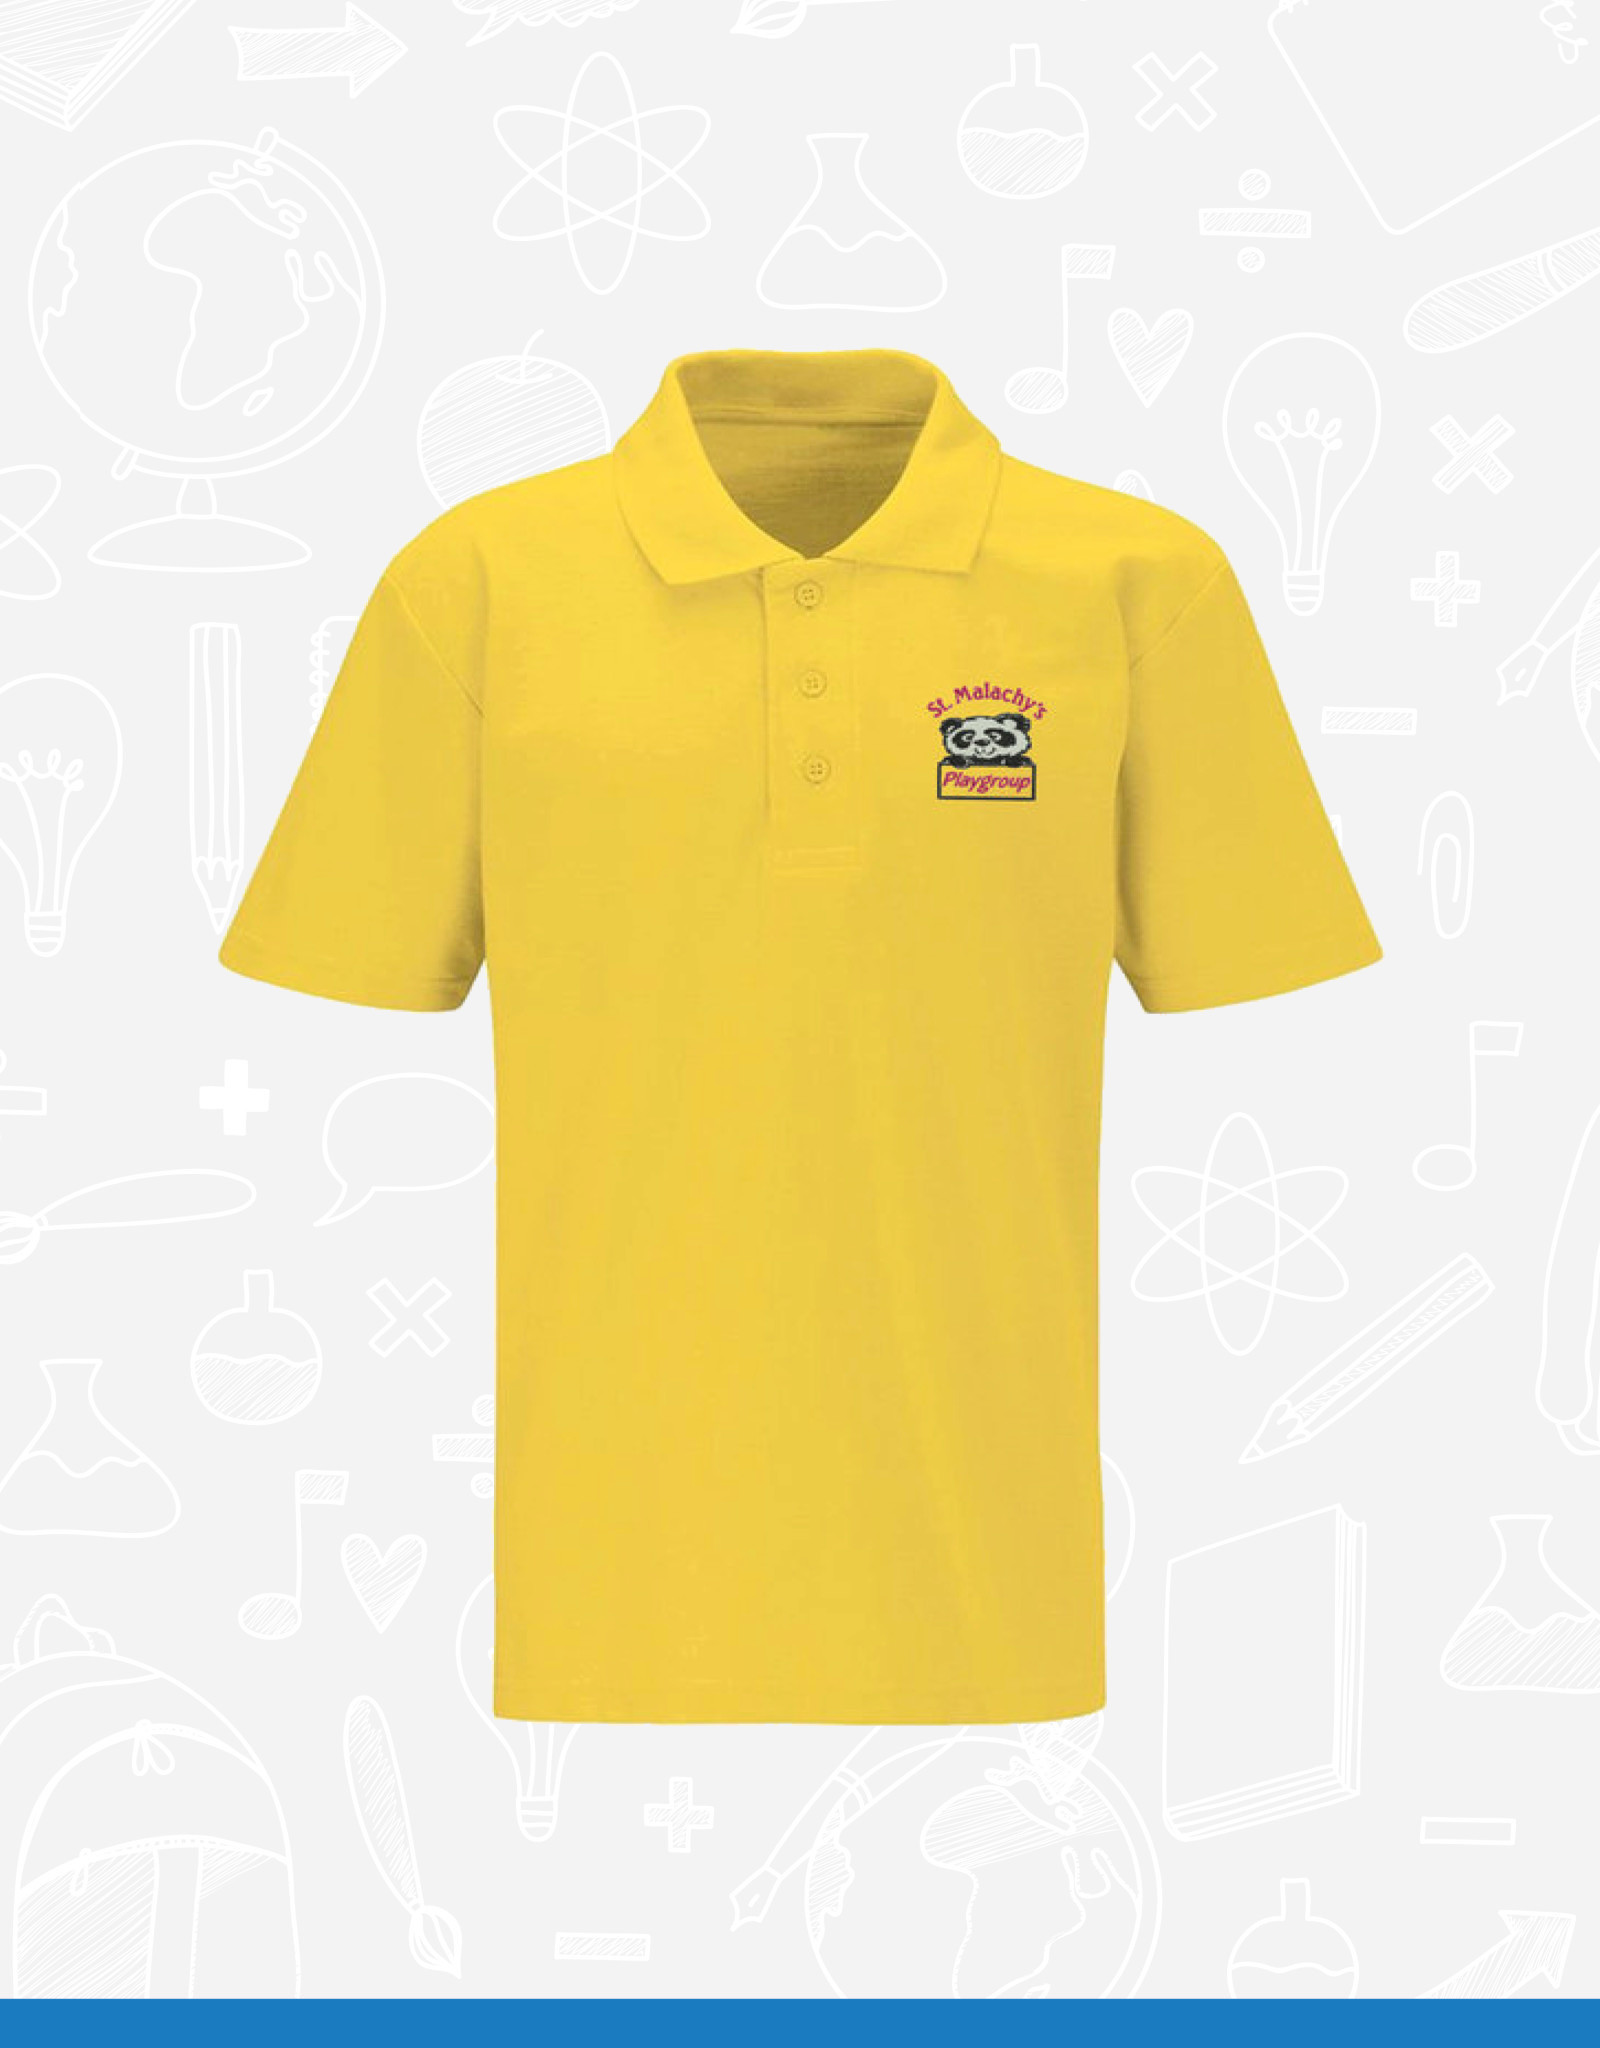 Banner St Malachy's Playgroup Polo Shirt (3PC)